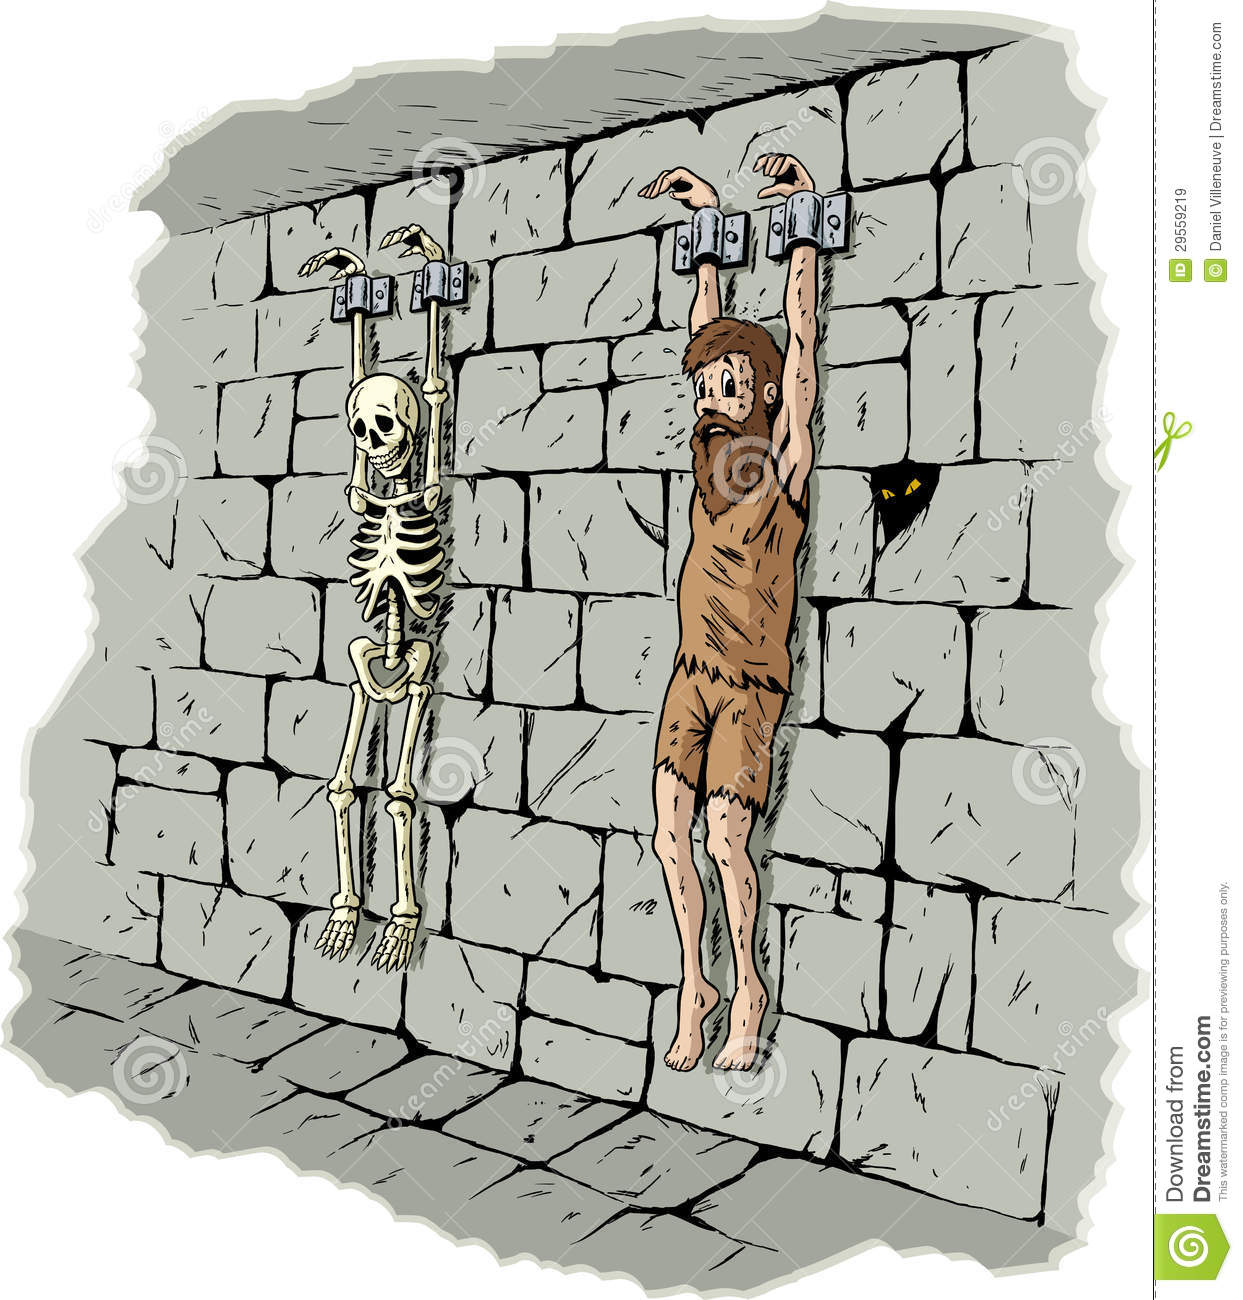 Luk 11:47 Woe unto you! for ye build the sepulchres of the prophets, and your fathers killed them. [Treasury of Scripture Knowledge] [Concordance and Hebrew/Greek Lexicon] [List Audio, Study Tools, Commentaries] [No Images or Hymns Available] [Versions/Translations] [Dictionary Aids] [Select for Copy; Double click to (de-)select all] Luk 11:48   Truly ye bear witness that ye allow the deeds of your fathers: for they indeed killed them, and ye build their sepulchres.